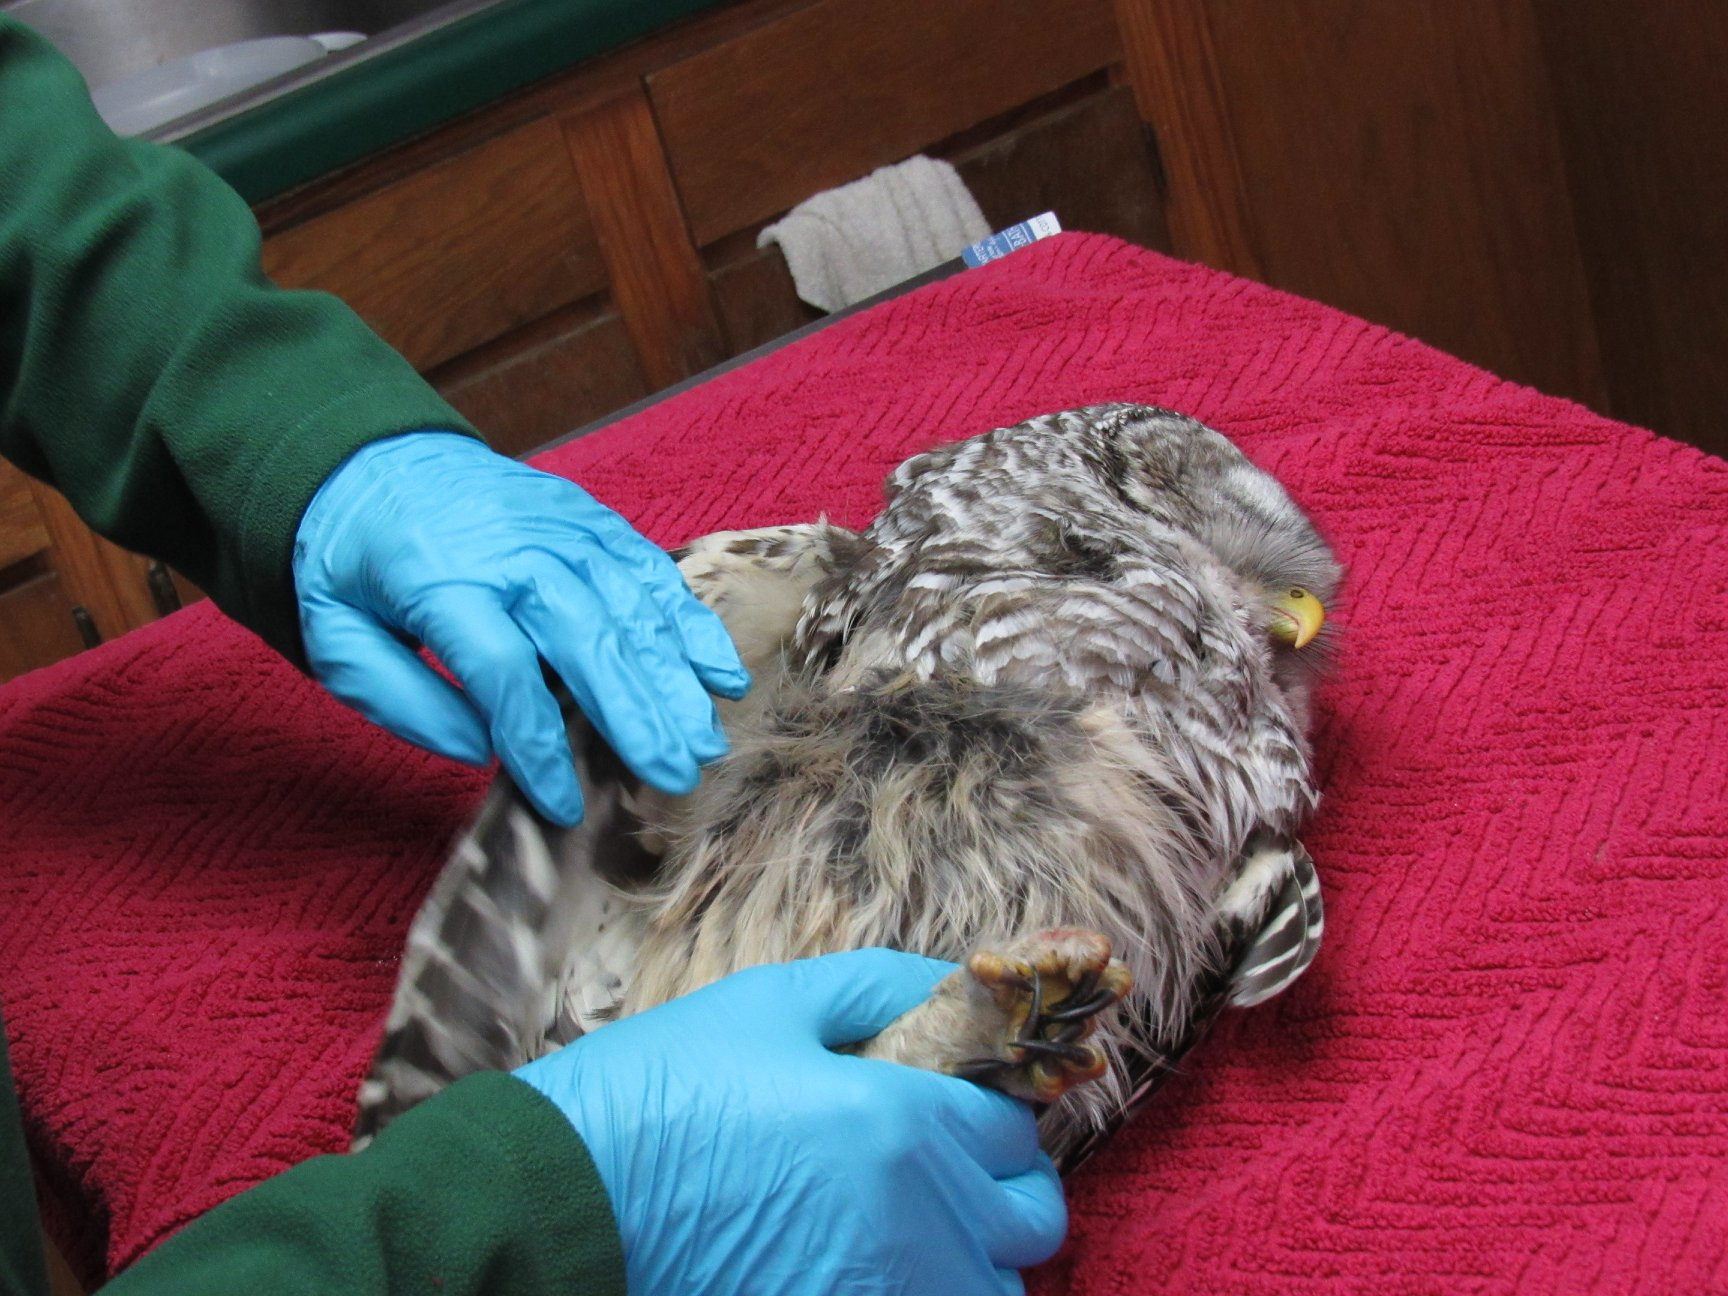 The absence of feathers on the area of the abdomen indicate where the owl made impact with the vehicle and the reason for the internal bleeding.